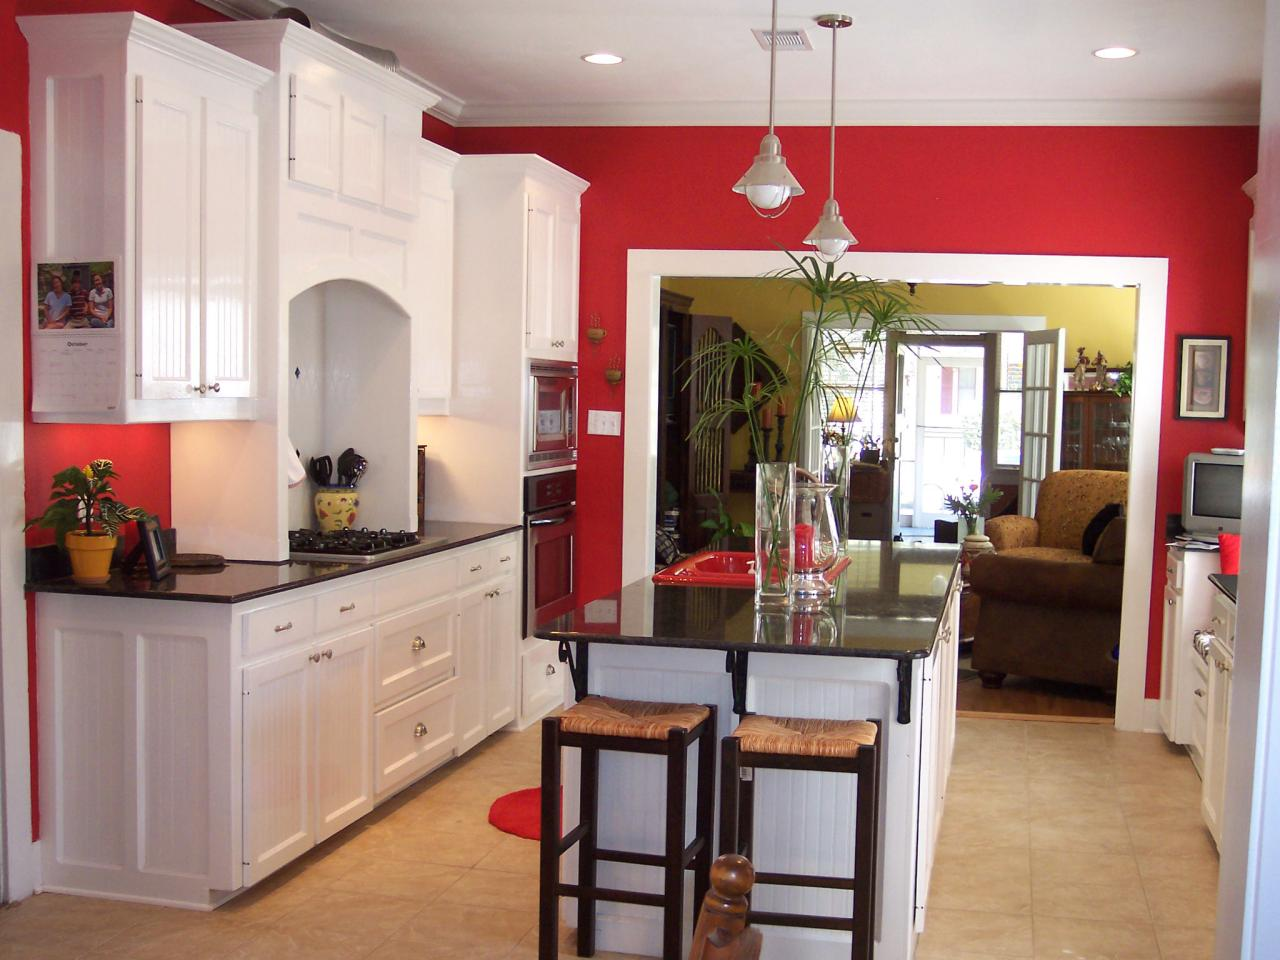 Beautiful kitchen paint colors what colors to paint a kitchen xckuebe